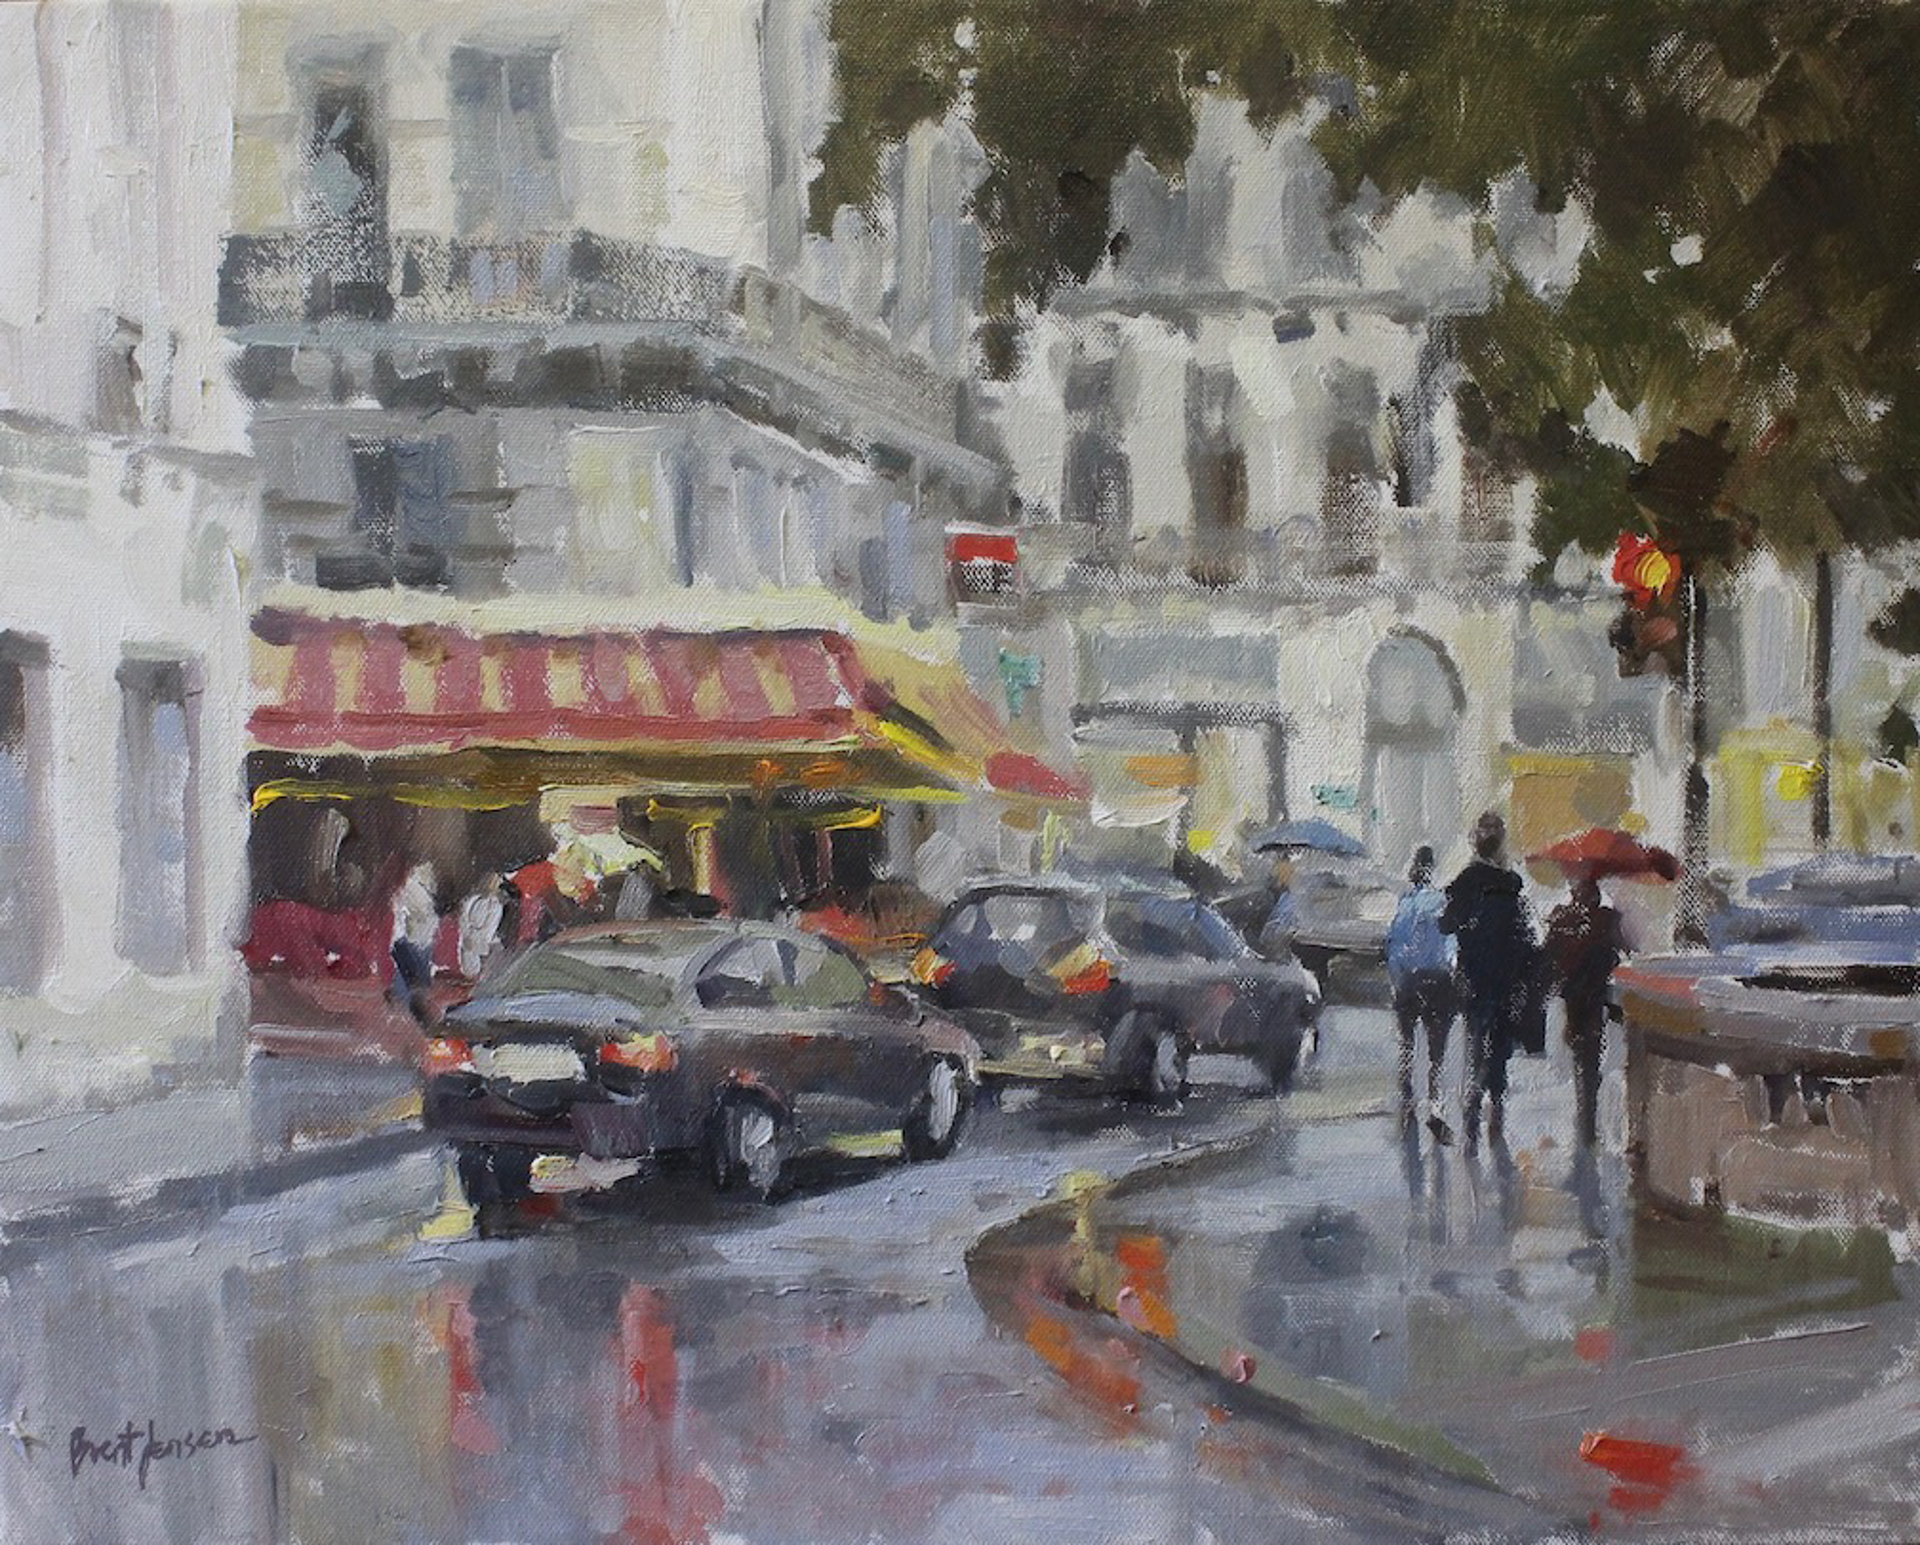 Rainy Day in Paris by Brent Jensen